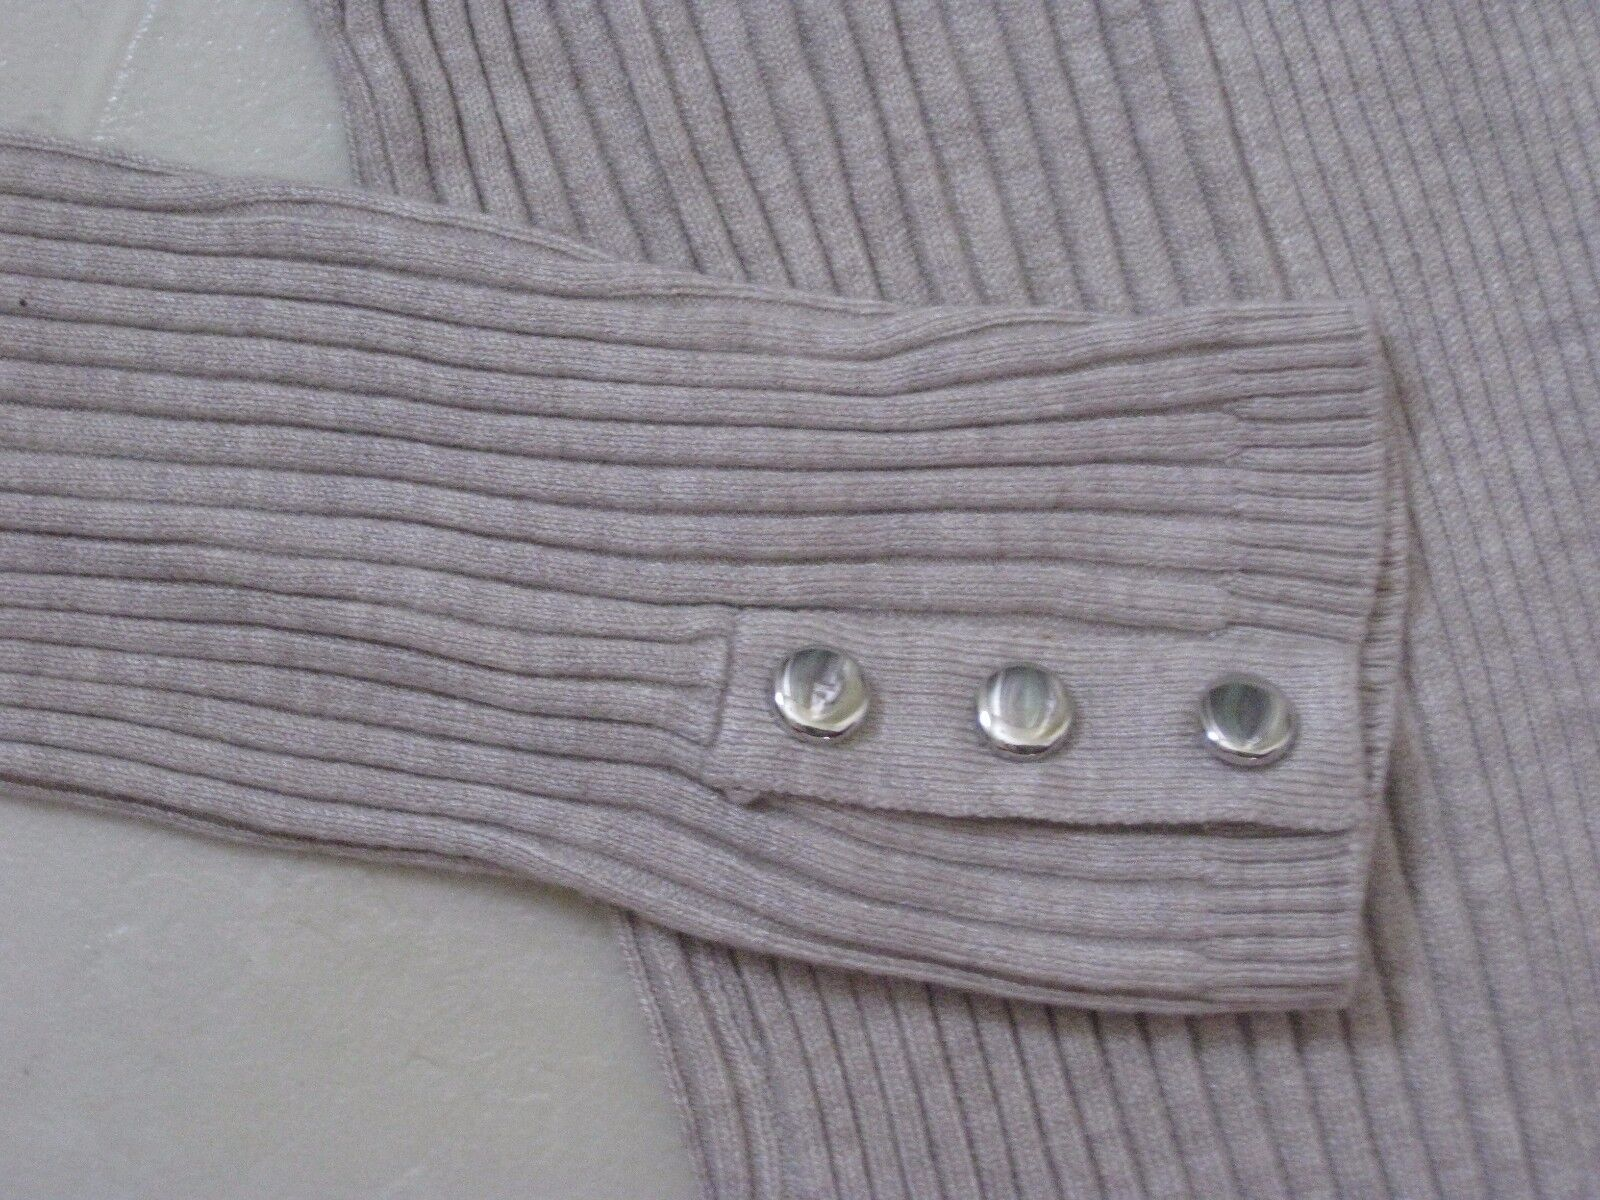 Style & & & Co. Long Sleeve Top   Sweater with Stud Detail at Sleeve Ends   S   New b3eb05